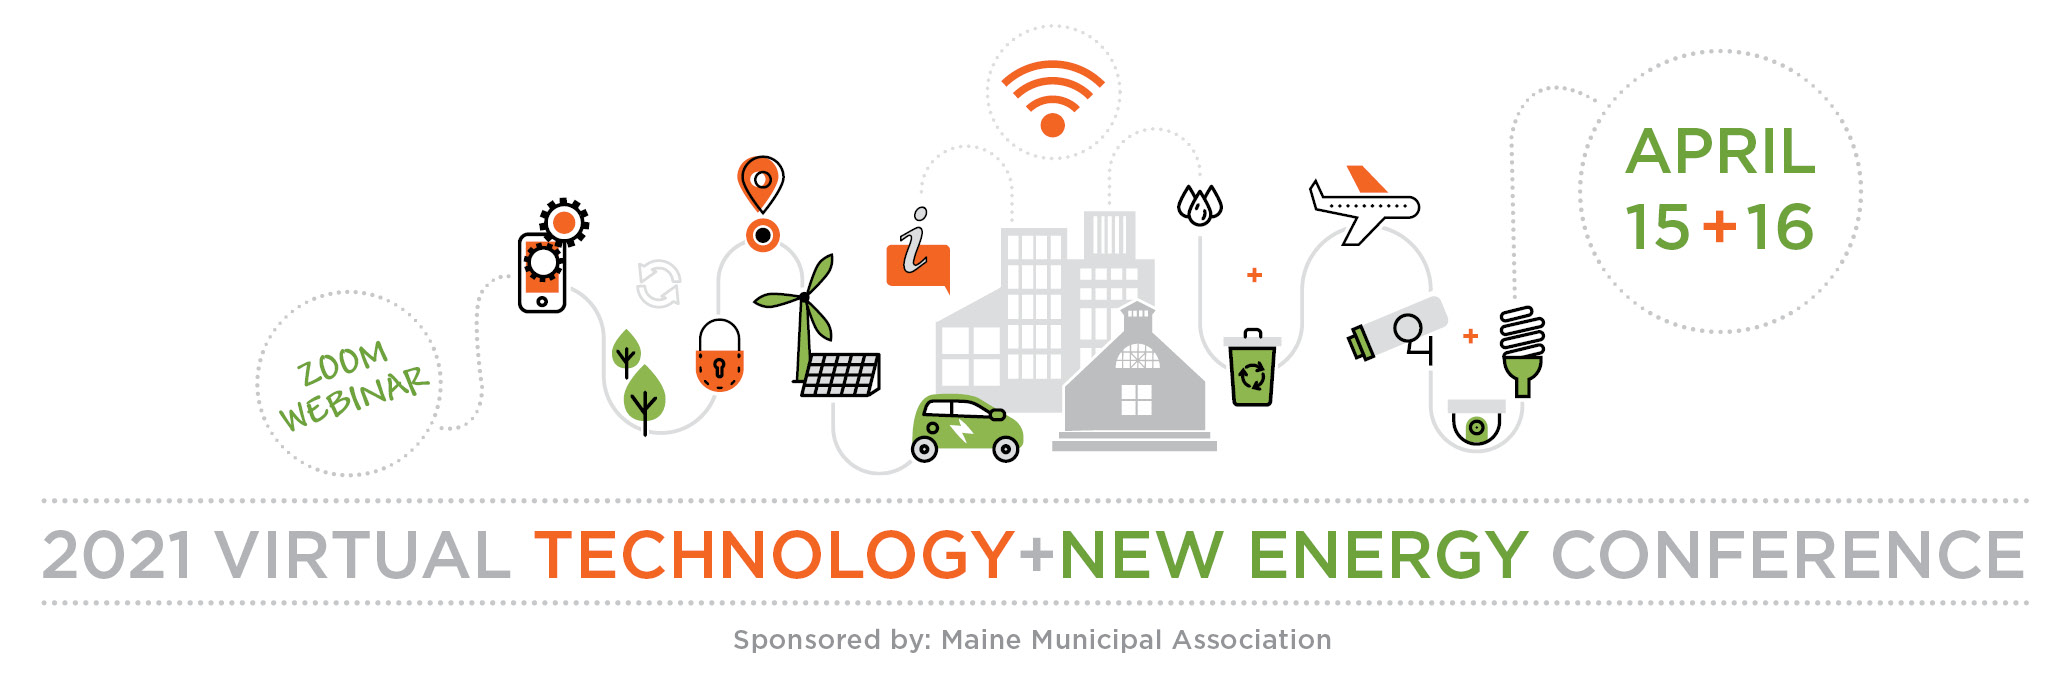 """Jensen Baird Attorneys Discuss the """"Legal Aspects of Solar Power"""" at MMA Technology & New Energy Conference"""